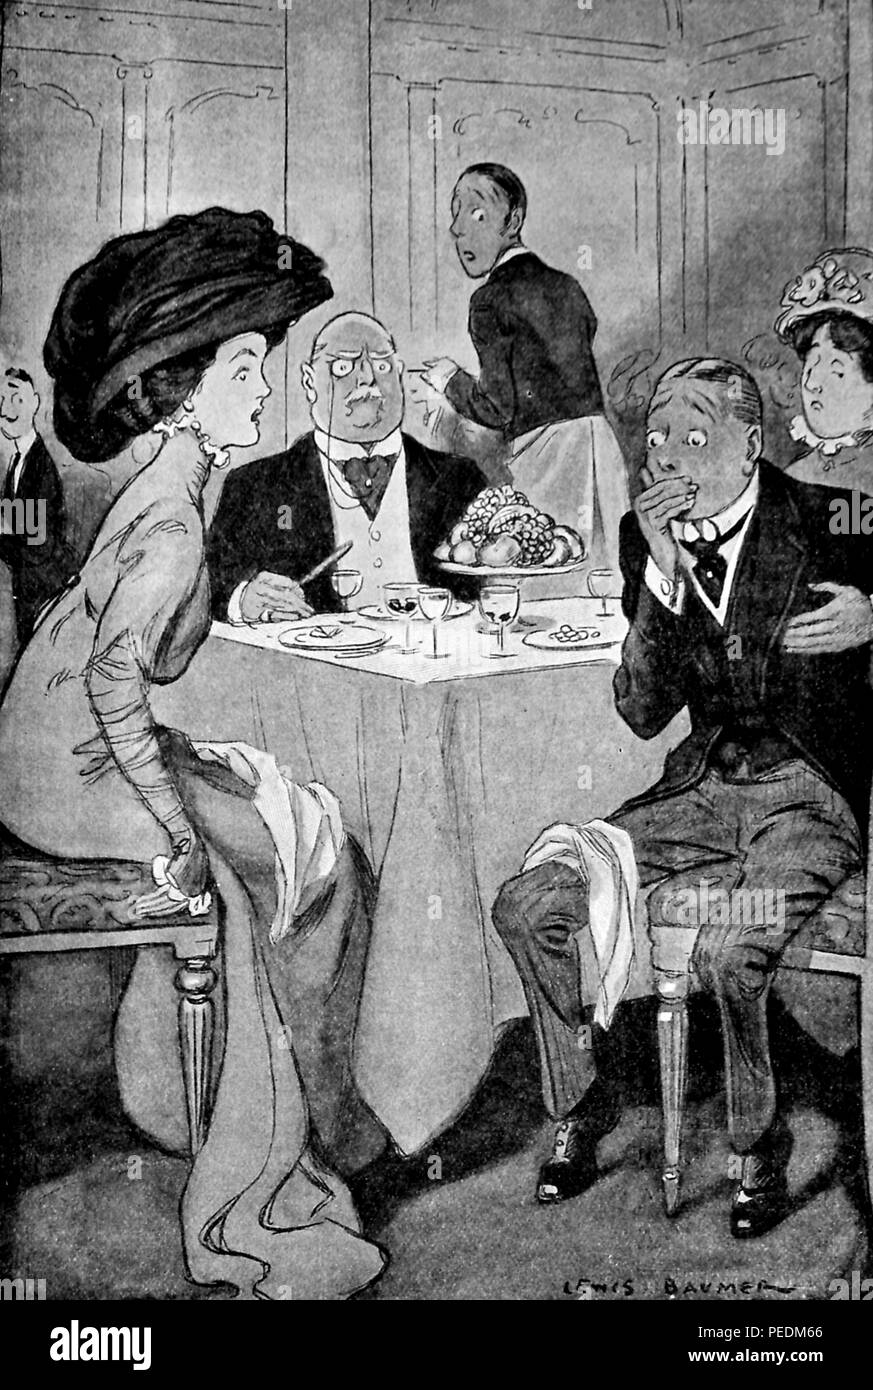 Black and white illustration, depicting a restaurant scene with a man clutching his chest and mouth following an etiquette faux pas (possibly choking after eating too quickly) while a young woman wearing an Edwardian dress and large hat, and several other patrons, looks on with distaste, illustrated by Lewis Baumer, and appearing in the volume 'Deportmental ditties: and other verses, ' published in London by Mills and Boon, 1900. Courtesy Internet Archive. () - Stock Image